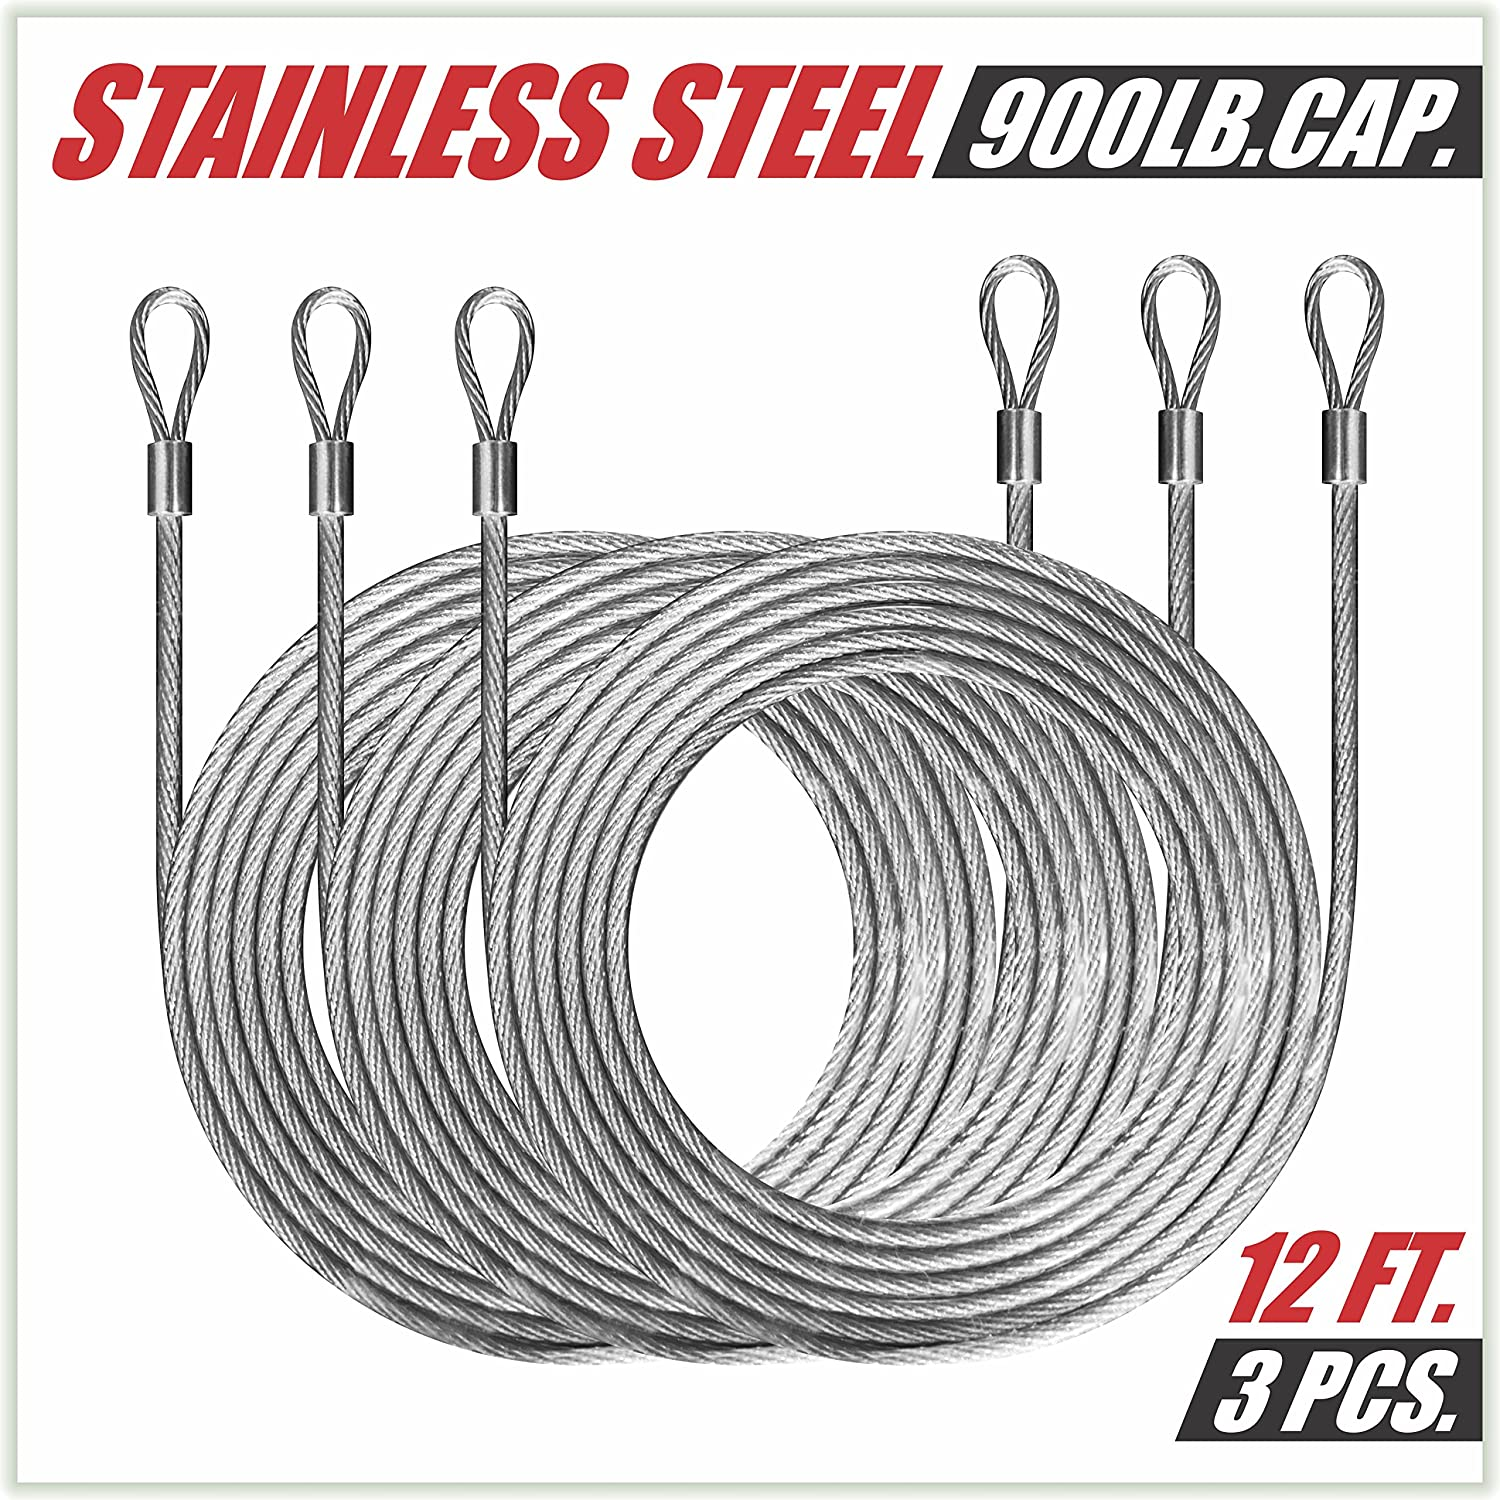 ColourTree 48 Feet (12ft x 4) PVC Coated Stainless Steel Metal Wire Cable Ropes Hardware Kits for Square and Rectangle Sun Shade Sail Canopy - Commercial Standard Heavy Duty